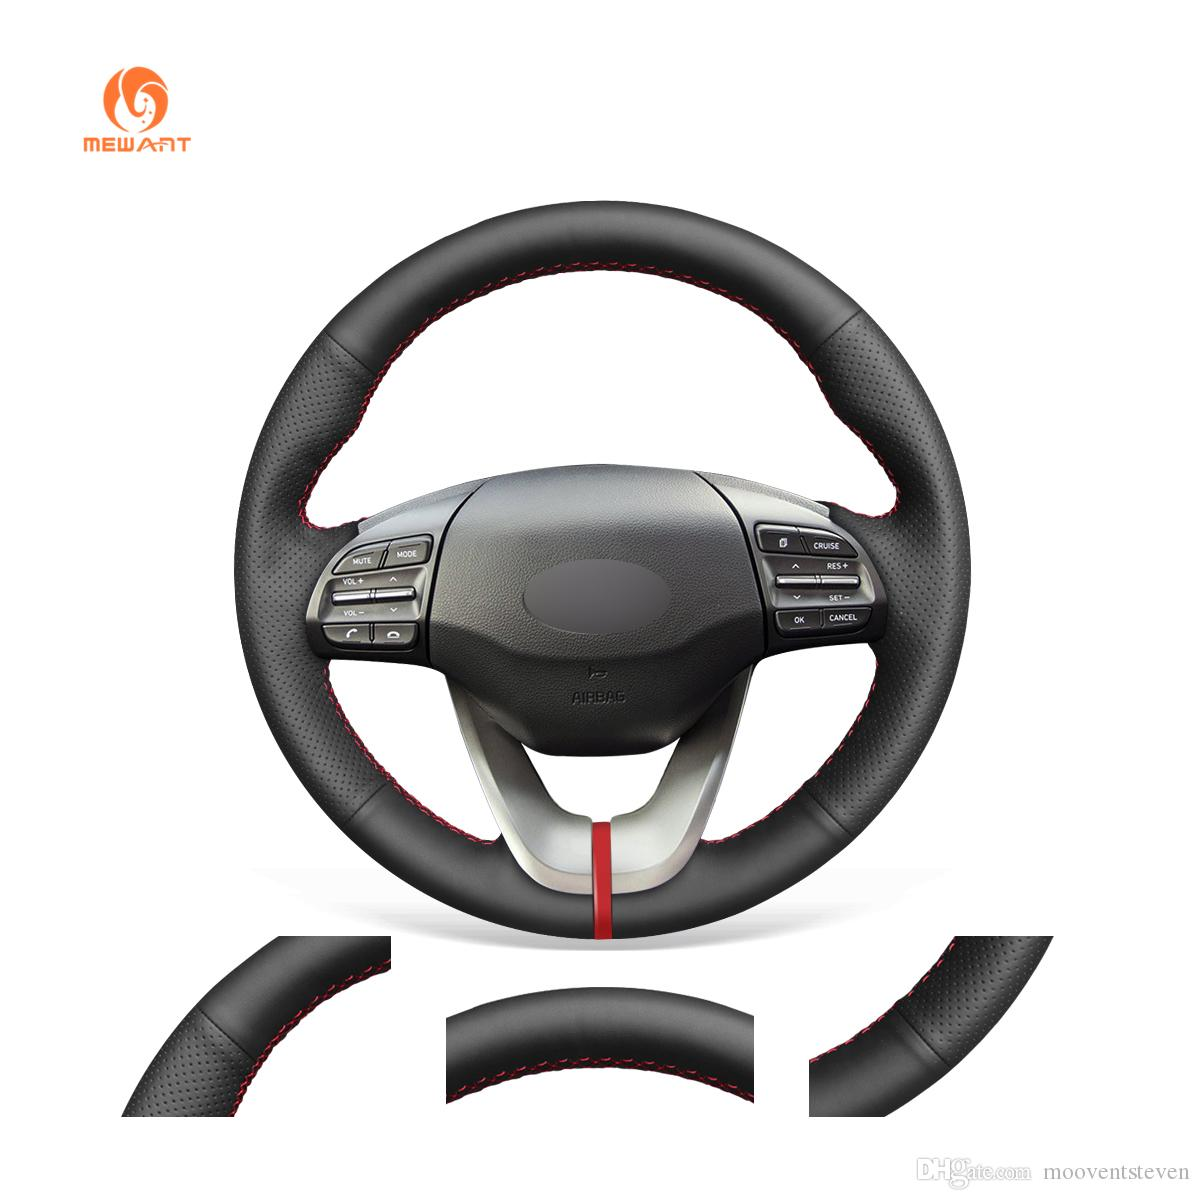 MEWANT Hand-stitched Durable Stitching Black Artificial Leather Car Steering Wheel Cover for Hyundai Veloster 2019